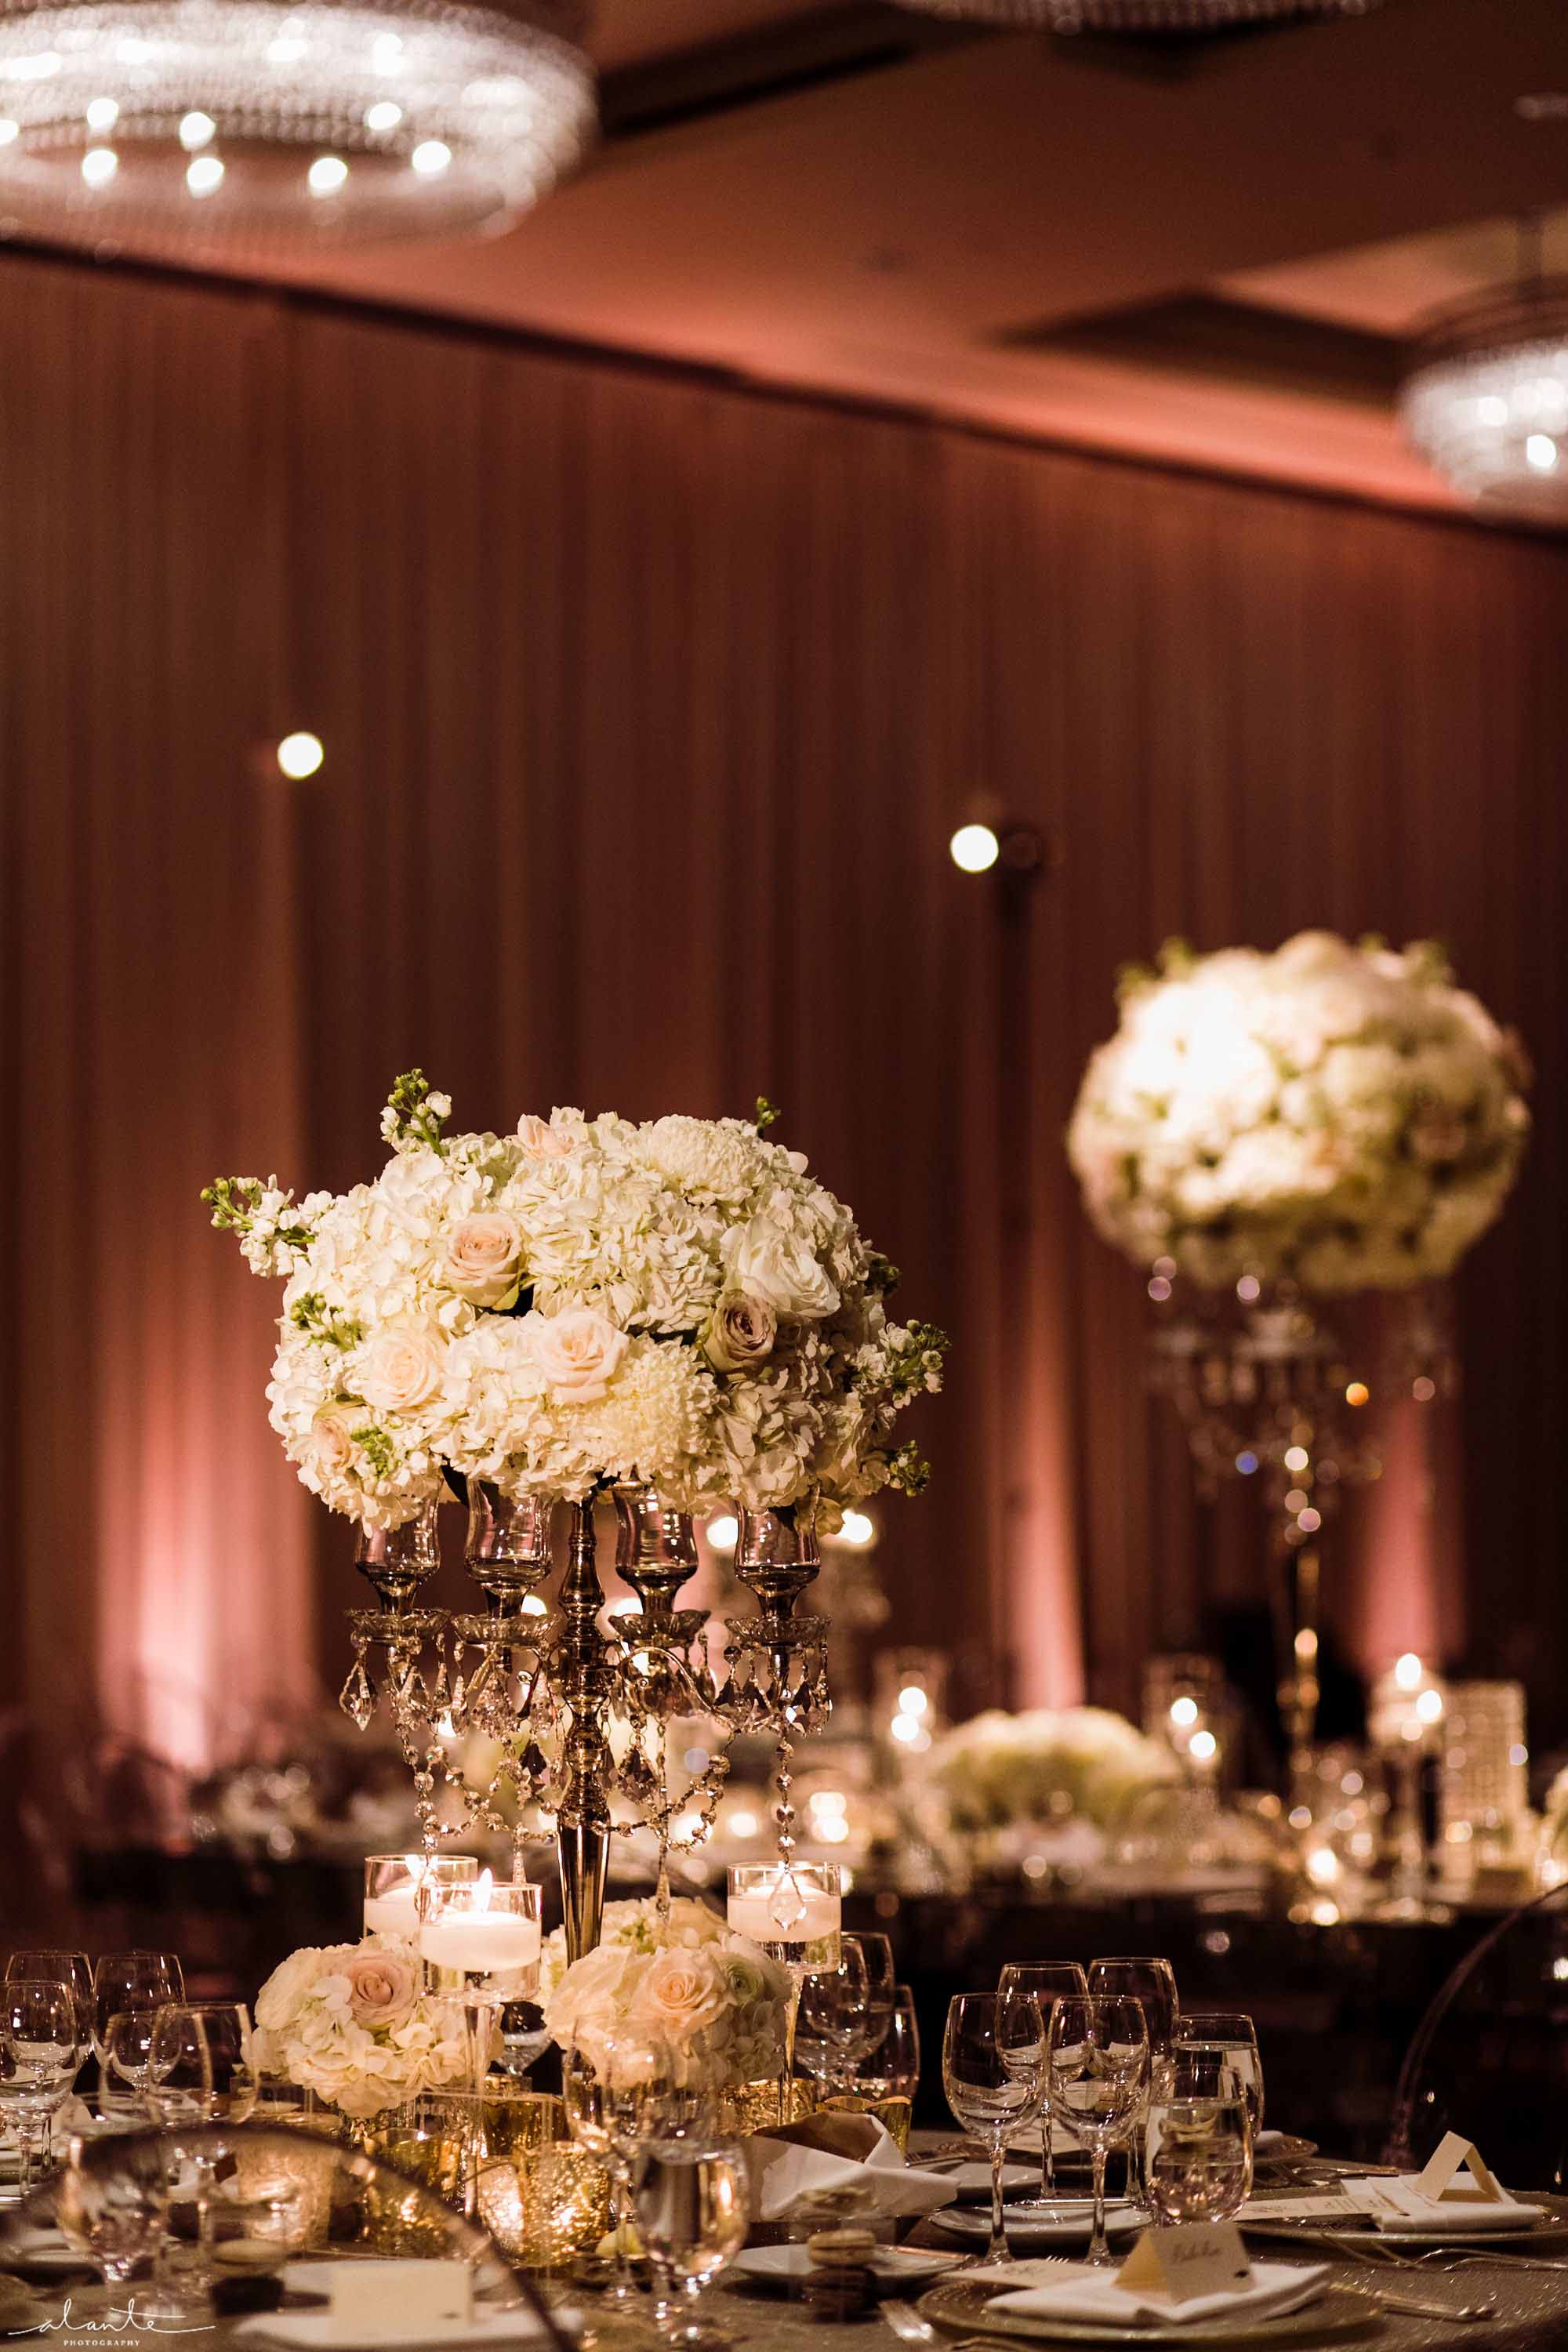 Elevated centerpieces with white flowers propped onto silver crystal candelabra - Luxury Winter Wedding at the Four Seasons by Flora Nova Design Seattle